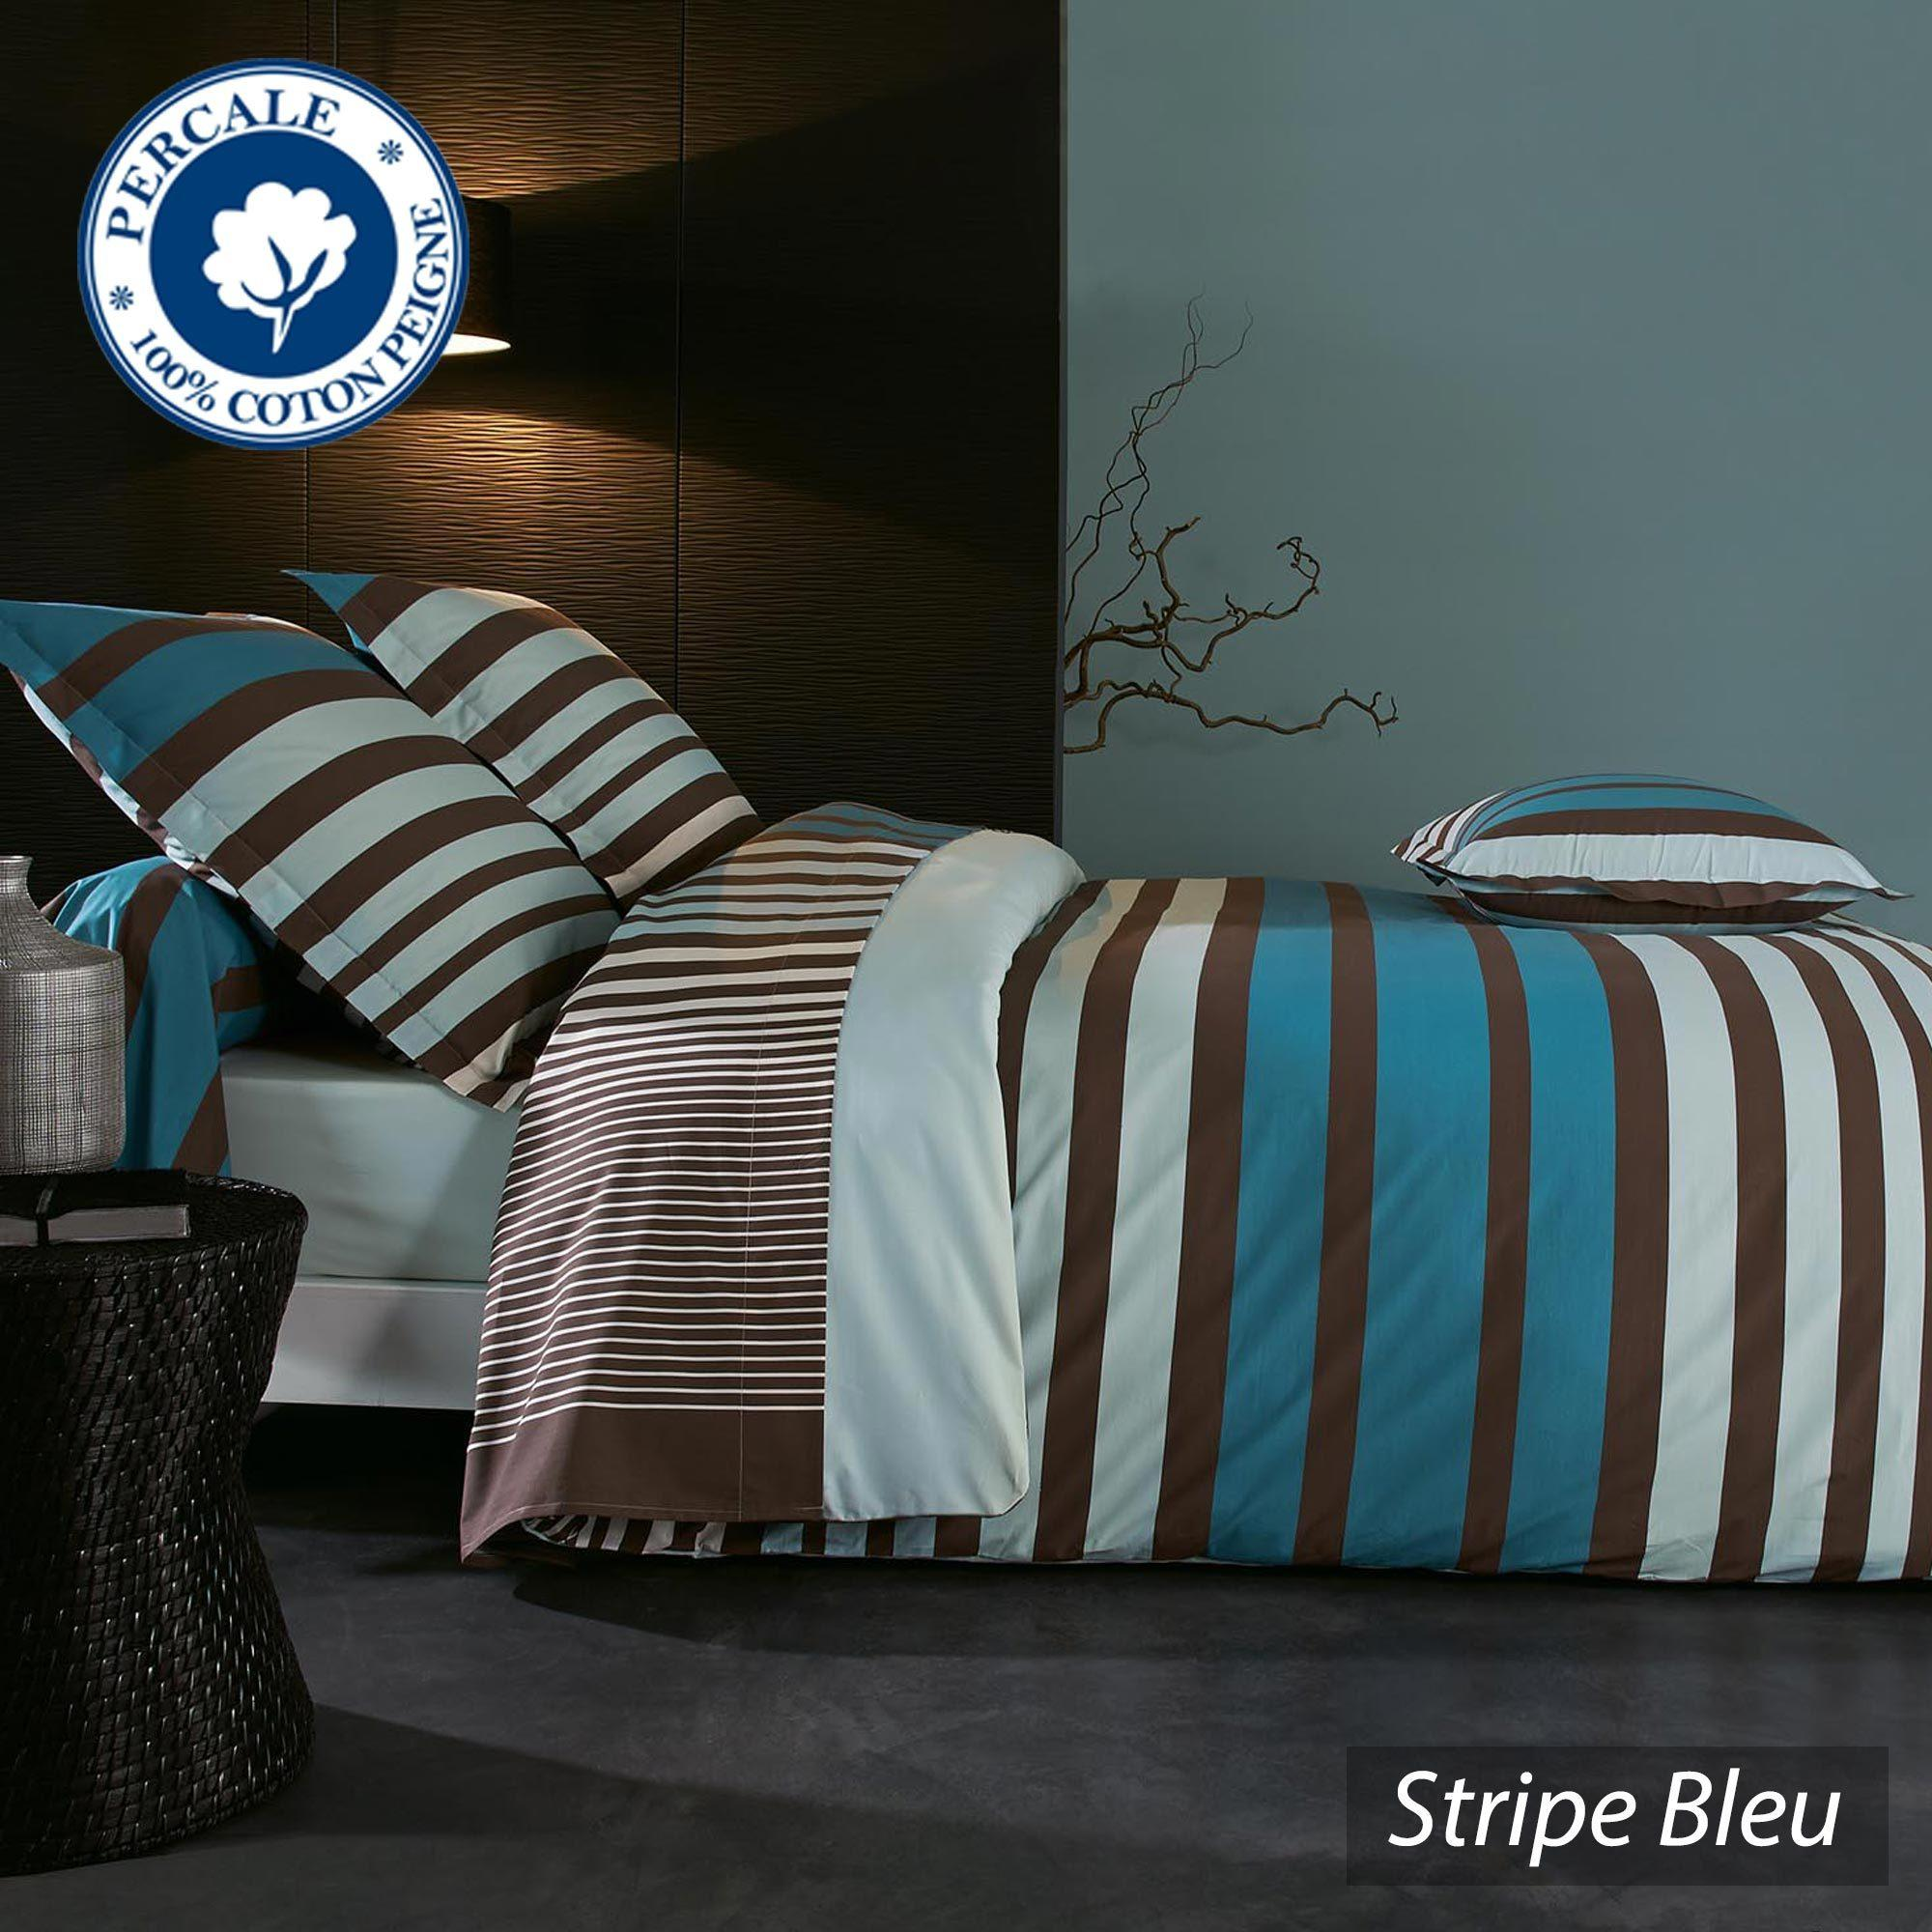 housse de couette percale pur coton peign 280x240 cm stripe bleu linnea vente de linge de maison. Black Bedroom Furniture Sets. Home Design Ideas